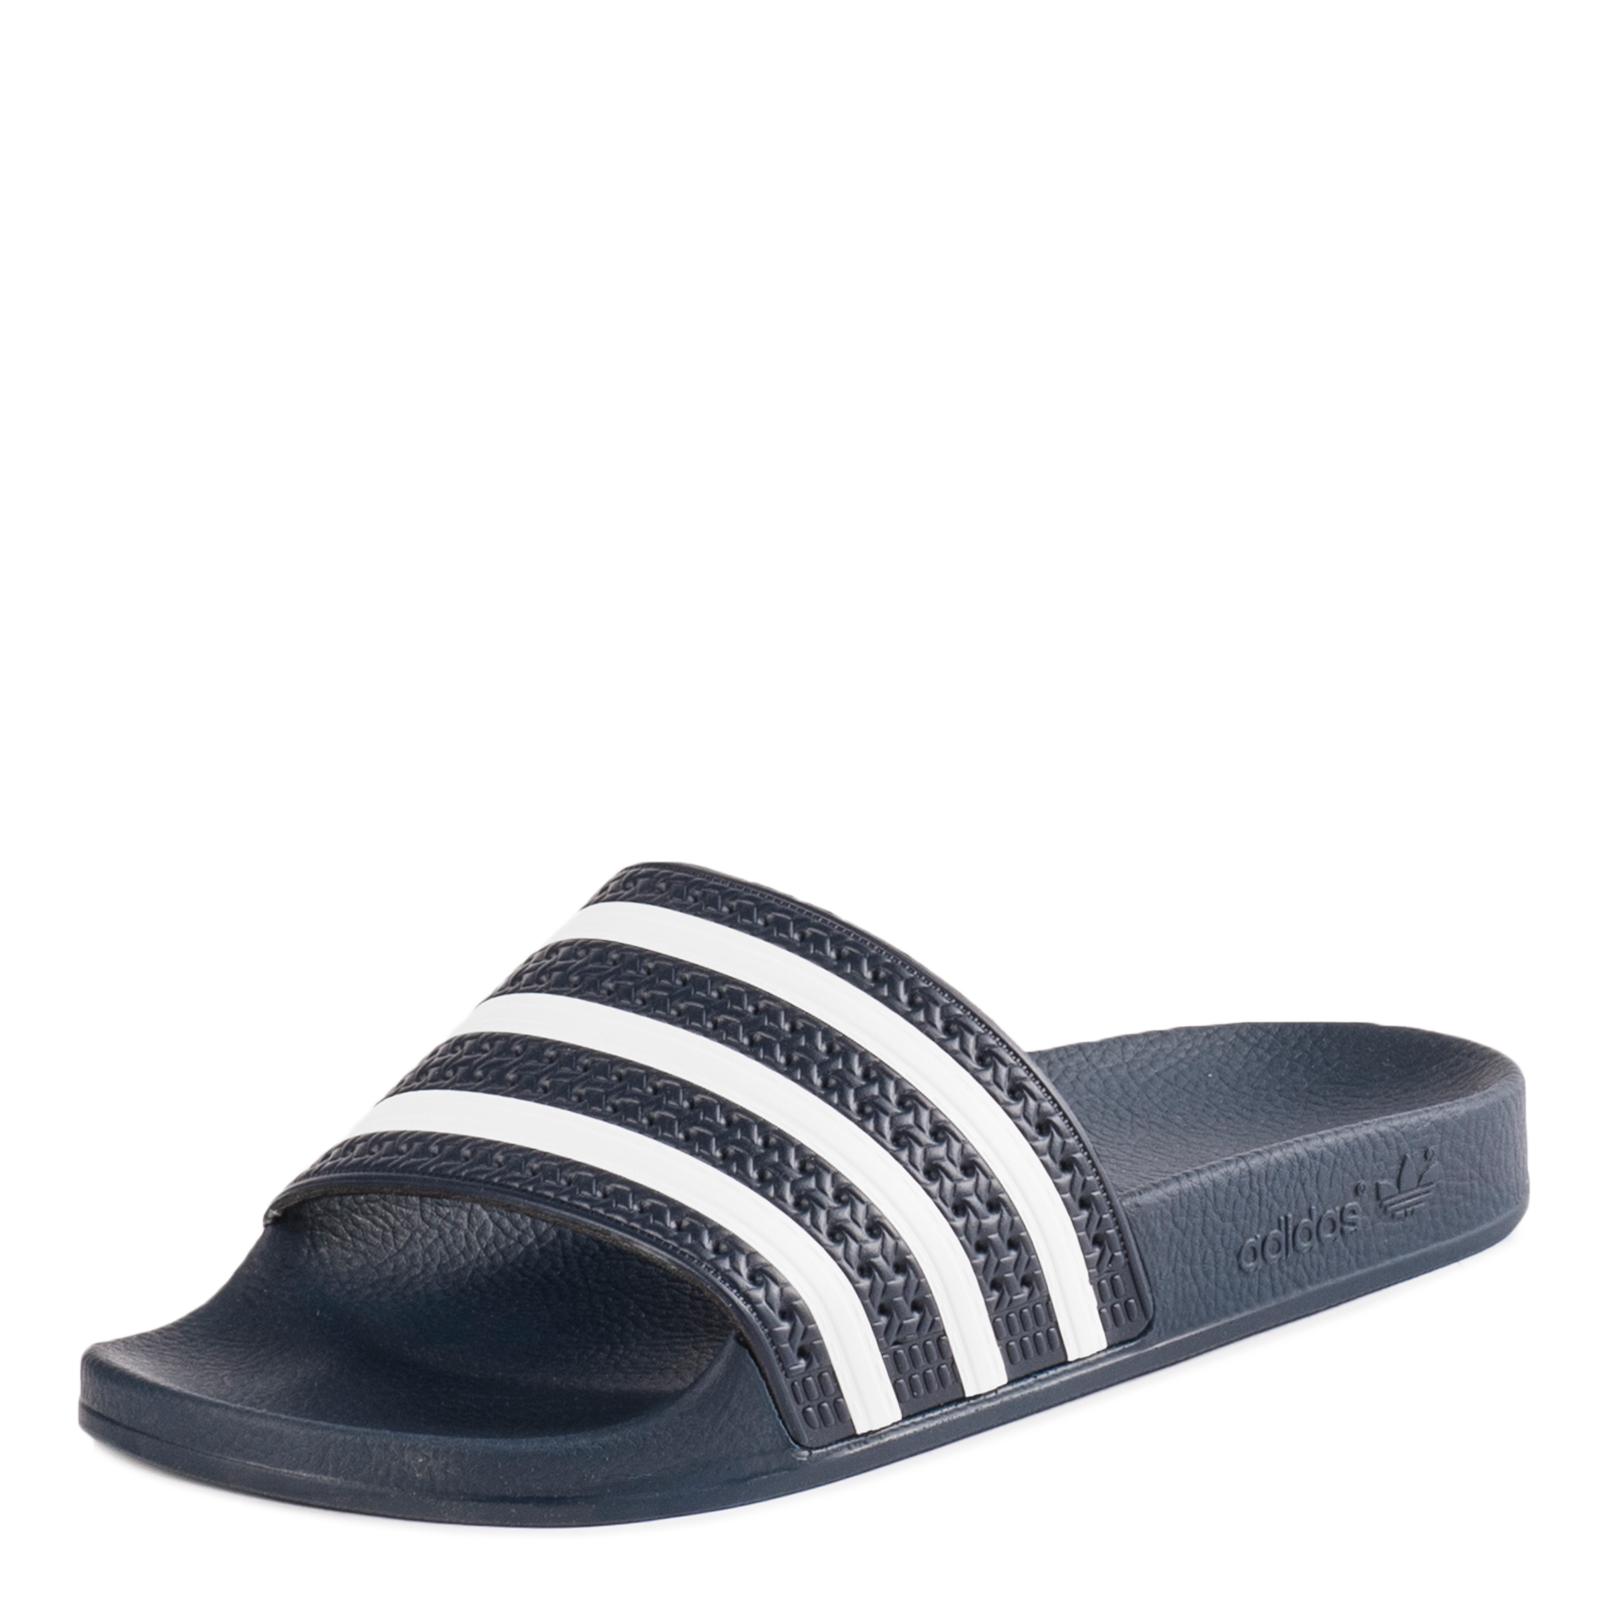 Slippers Adidas 288022 sports and entertainment for men